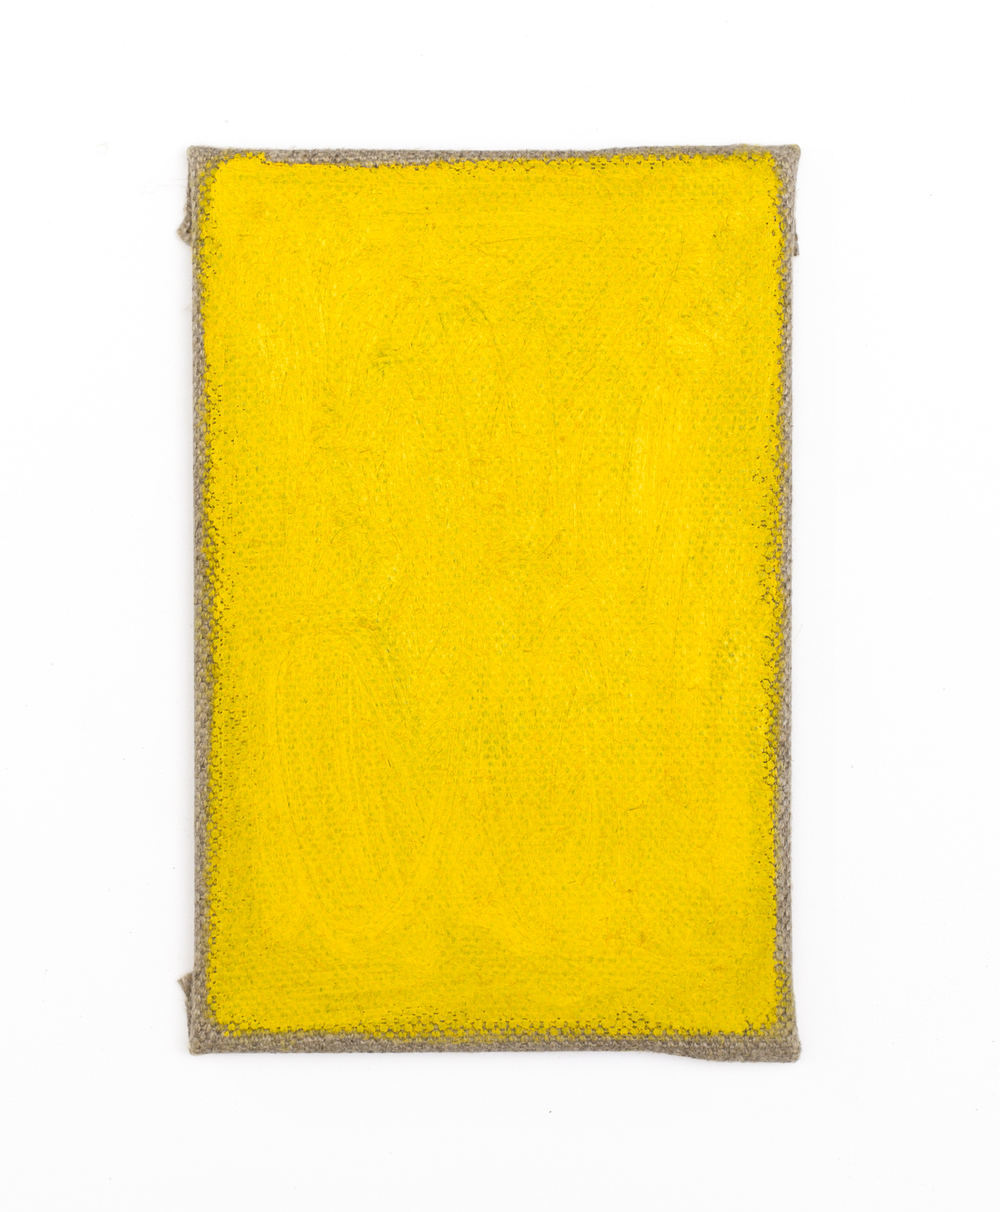 Eleanor Louise Butt, Untitled, 2016. Oil on Belgian linen 15cm x 10cm